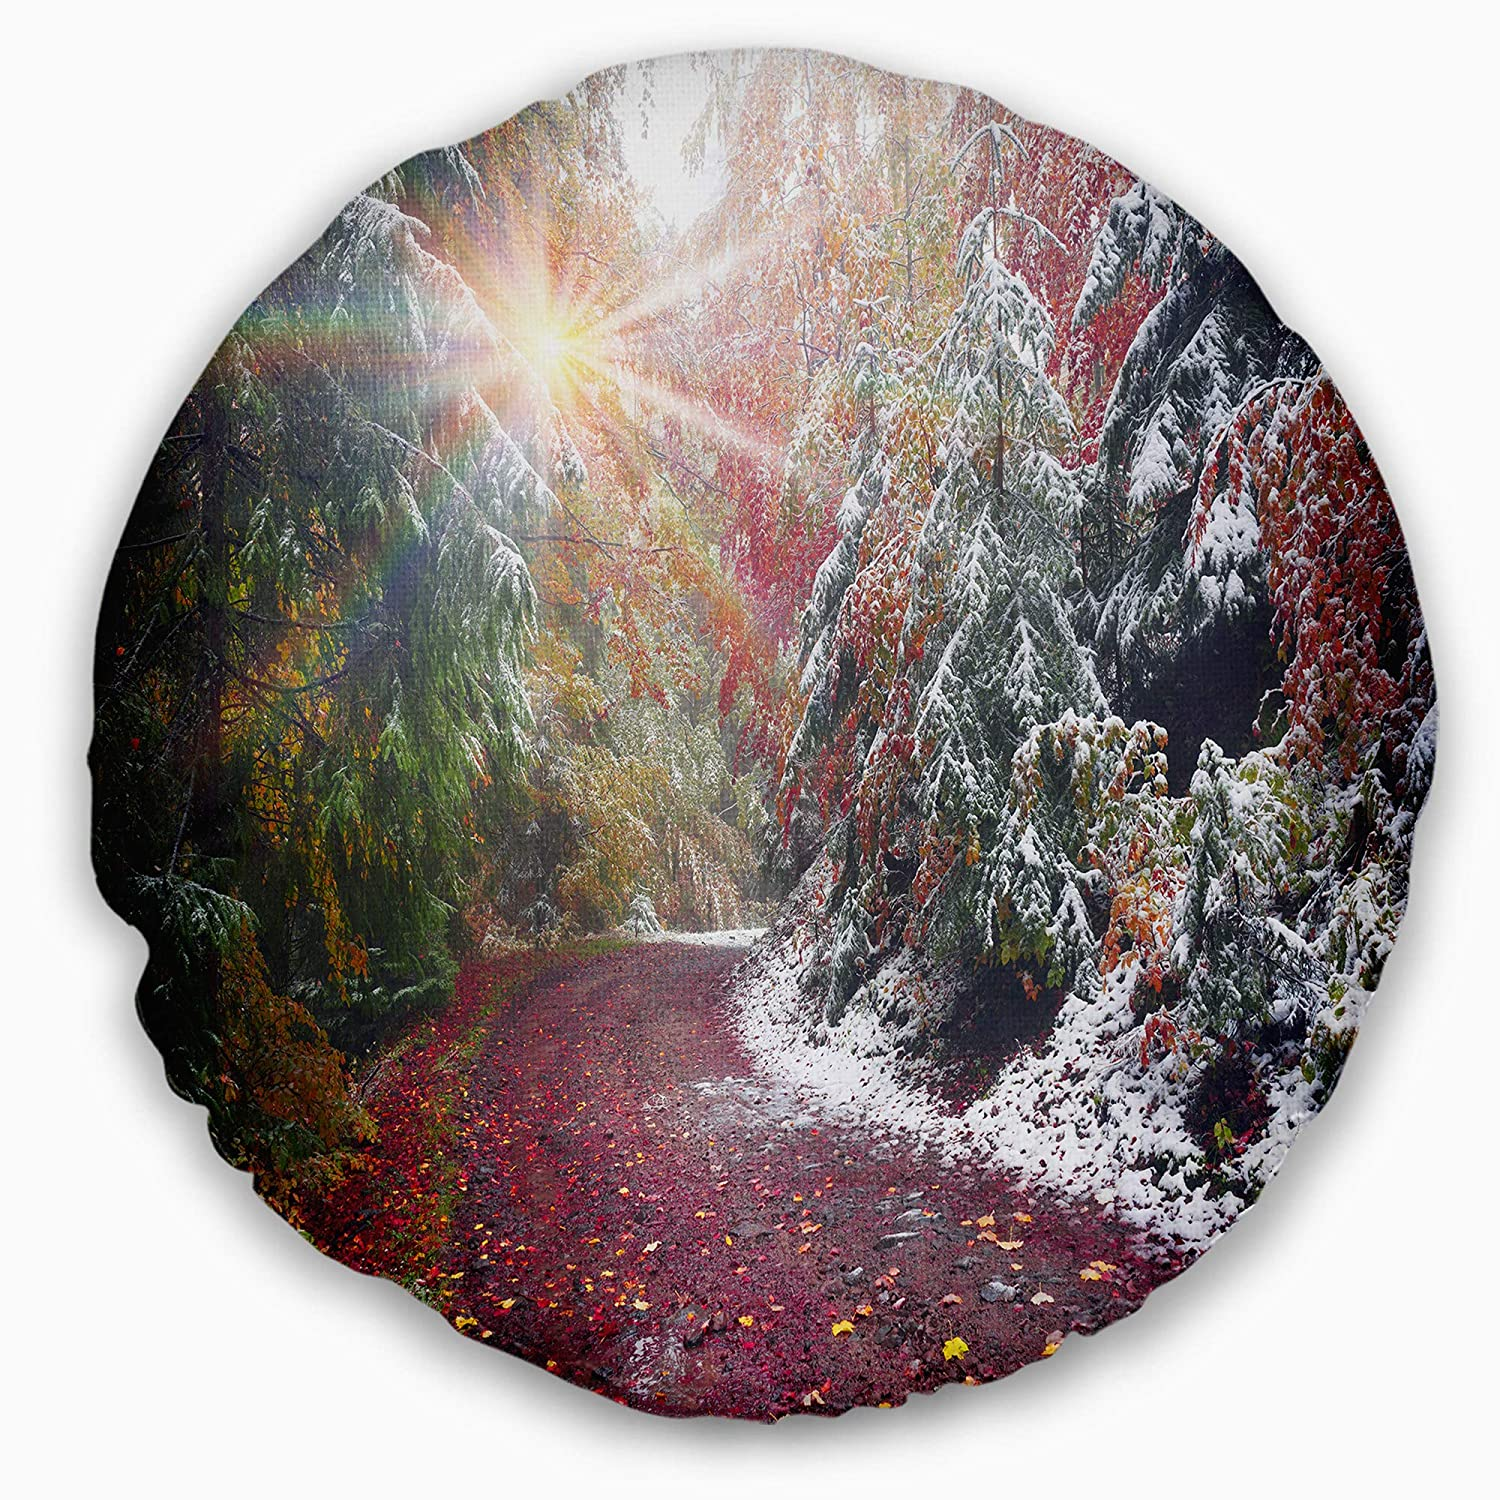 Insert Printed On Both Side Sofa Throw Pillow 16 Designart Cu9821 16 16 C Breathtaking View Of Aline Forest Landscape Photography Round Cushion Cover For Living Room Home Kitchen Bedding